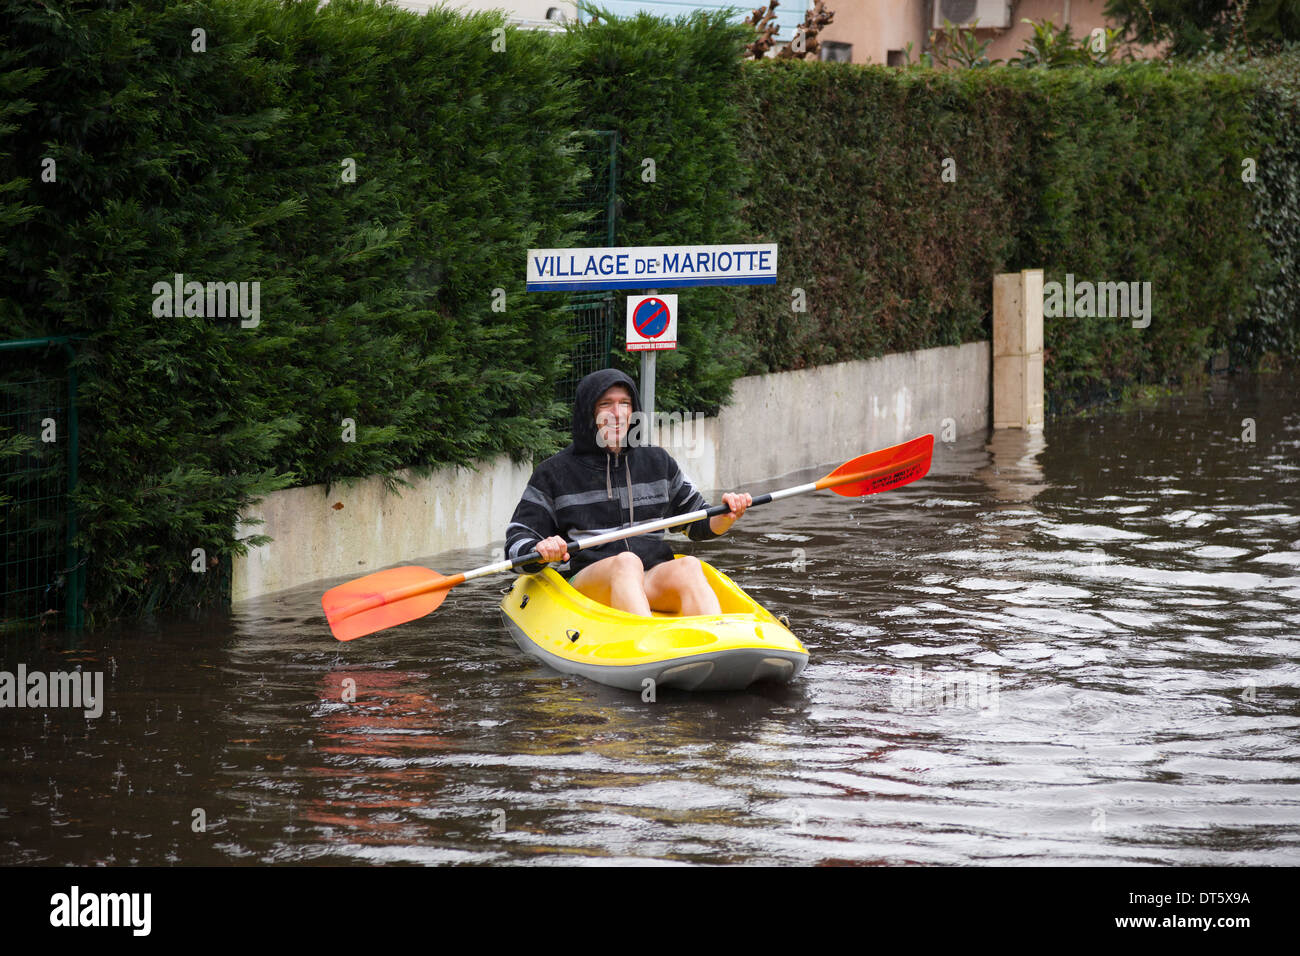 In Capbreton (Landes - France), boating on a flooded street. All opportunities are good for youngish people to have fun! - Stock Image